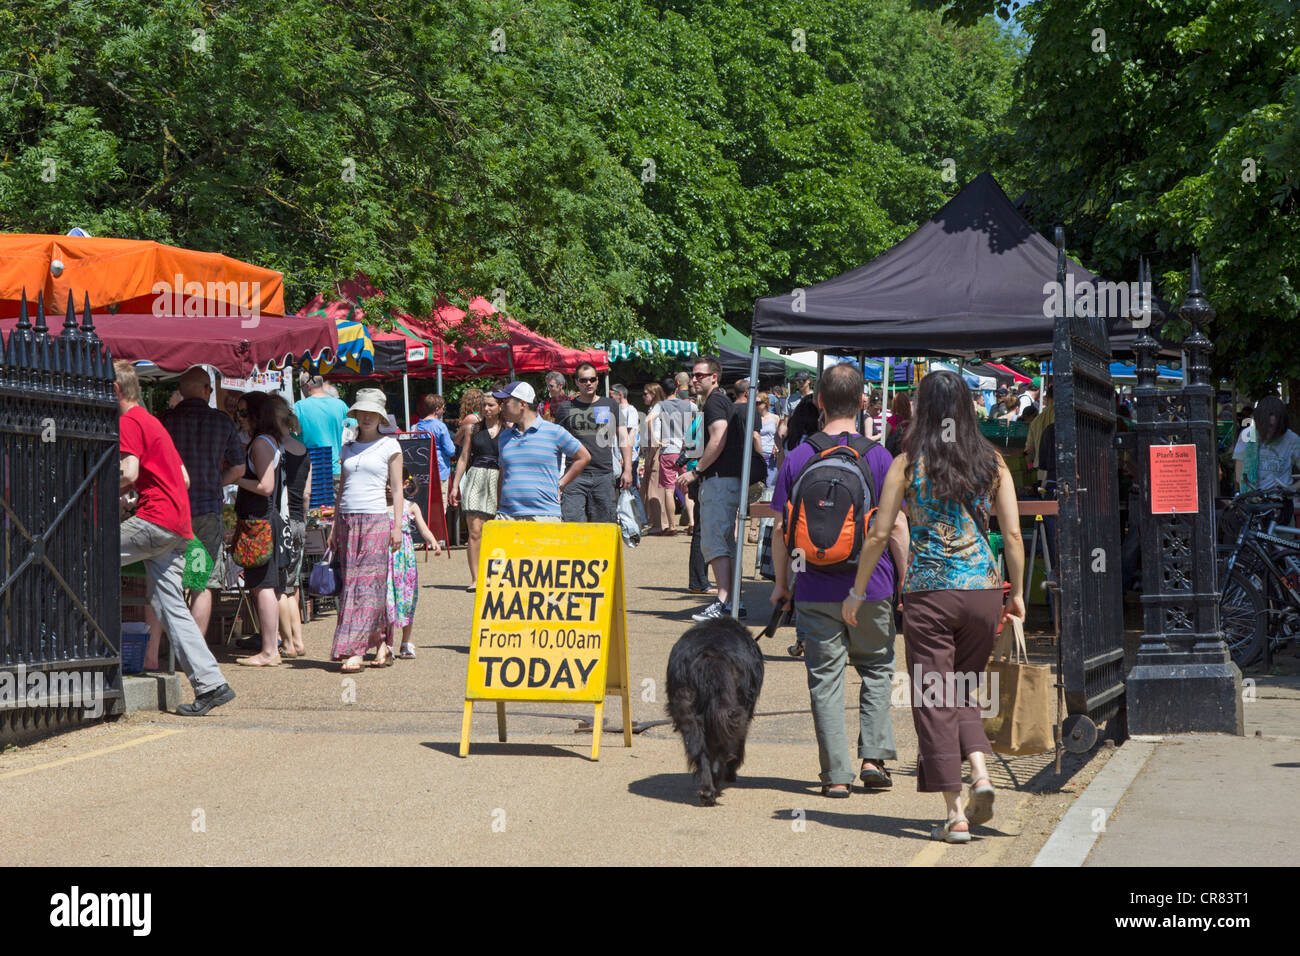 City & Country Sunday Farmers Market - Alexandra Palace Park - Muswell Hill - London - Stock Image